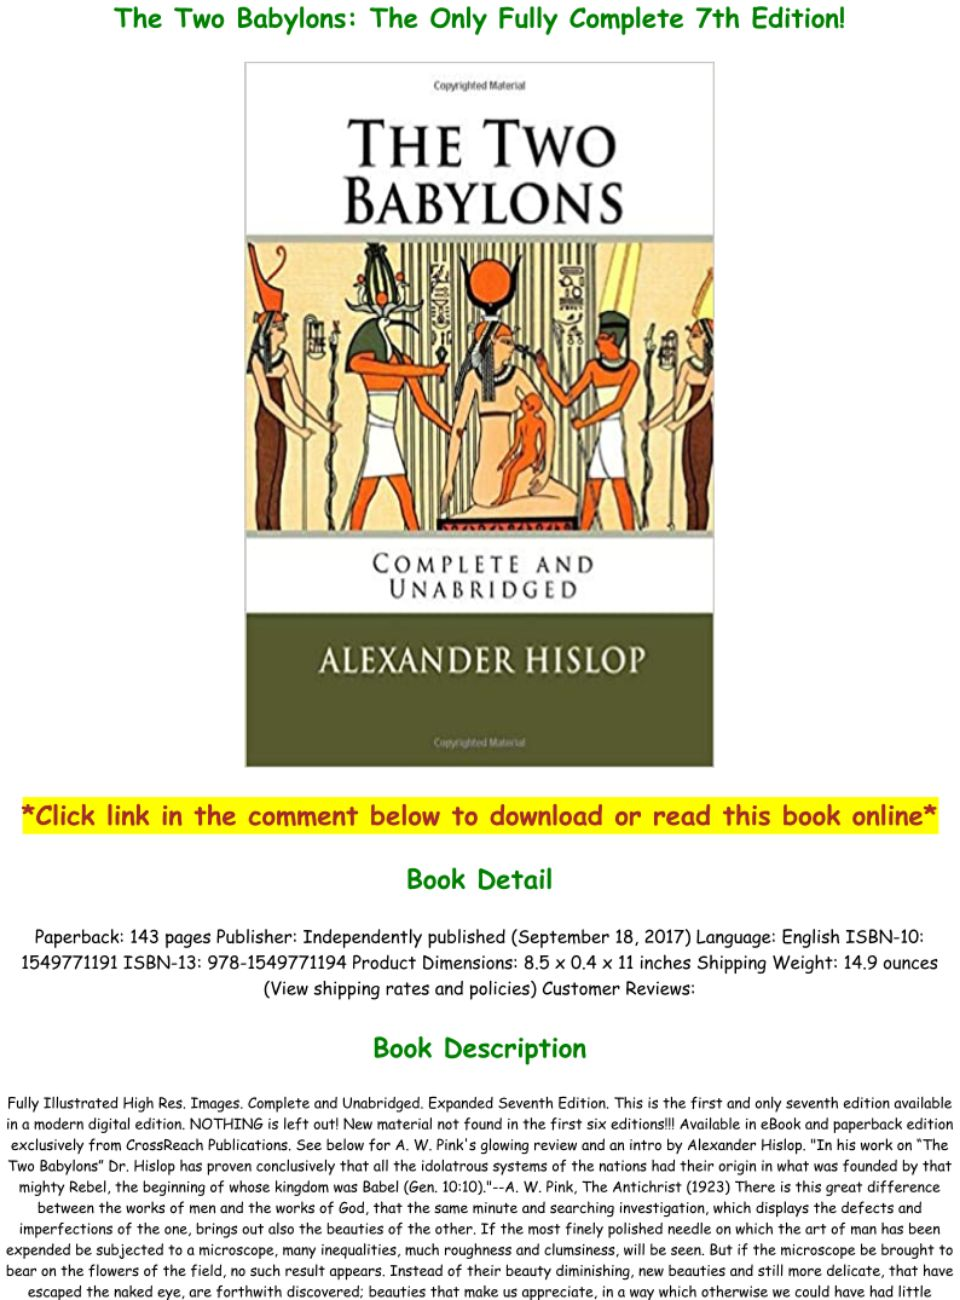 The Two Babylons Pdf Free Download